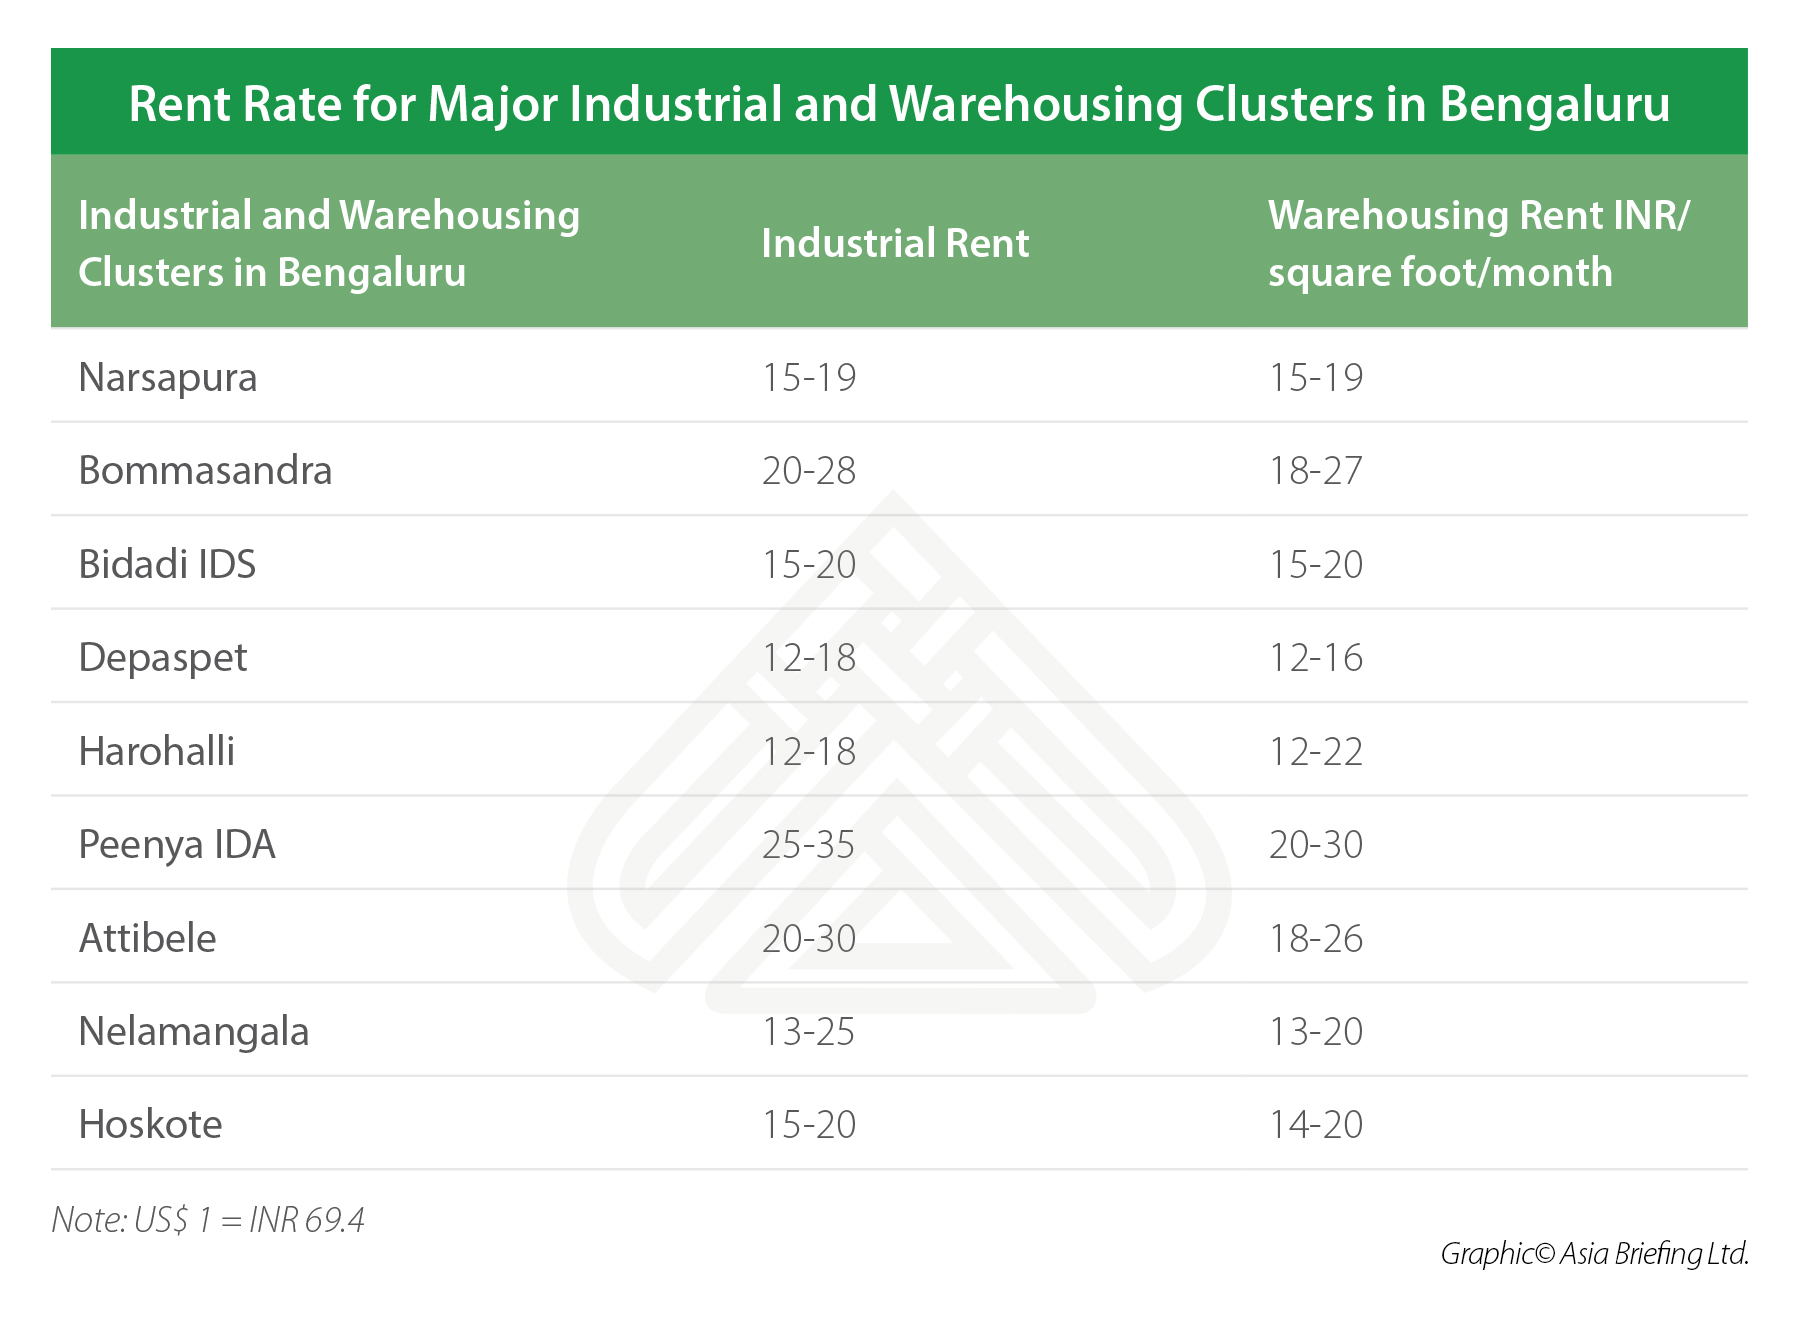 Rent Rate for Major Industrial and Warehousing Clusters in Bengaluru